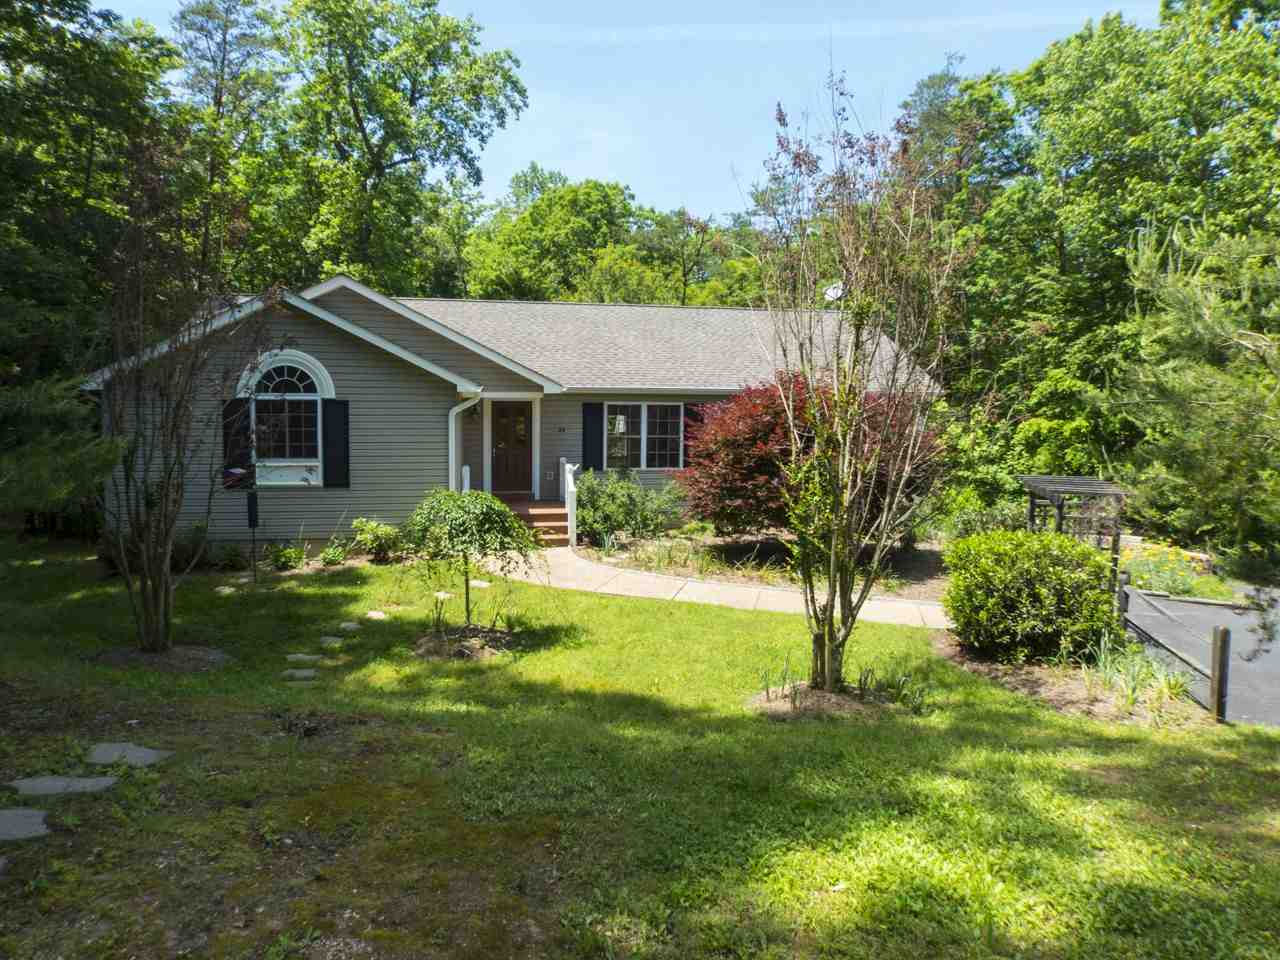 Property for sale at 24 RIVER RIDGE DR, Palmyra,  VA 22963